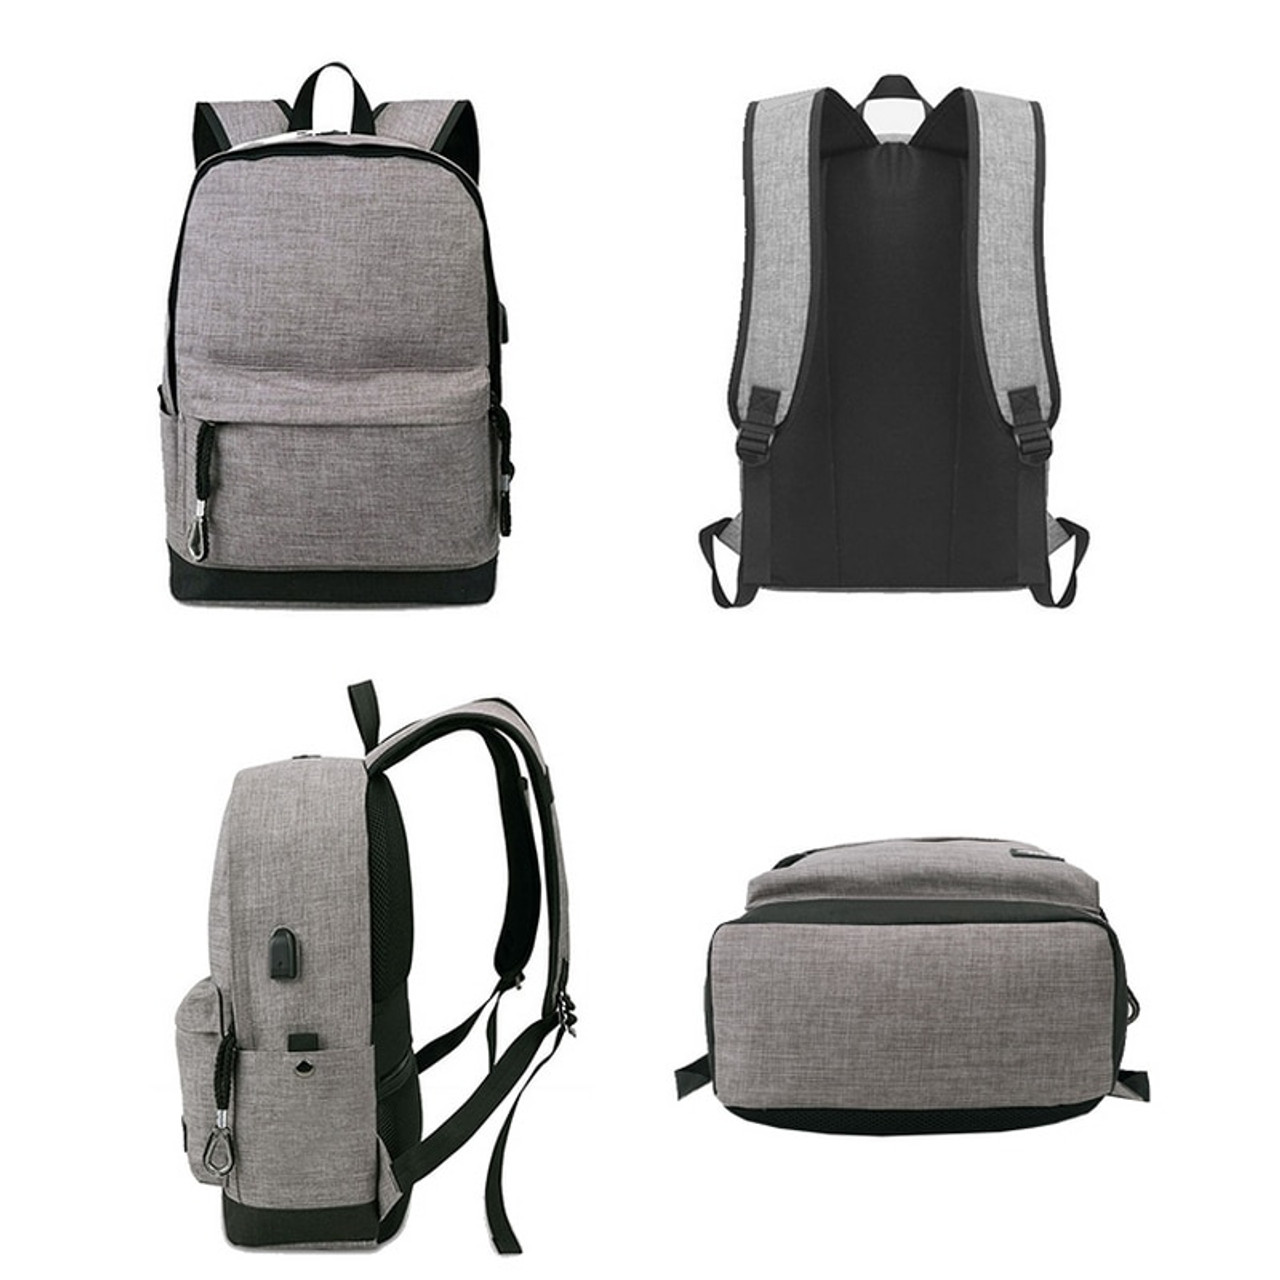 e87c70f7ab4d canvas backpack men Casual Back Pack USB High school bags for Teenagers  Boys Schoolbag teens black Large Capacity male Bagpack